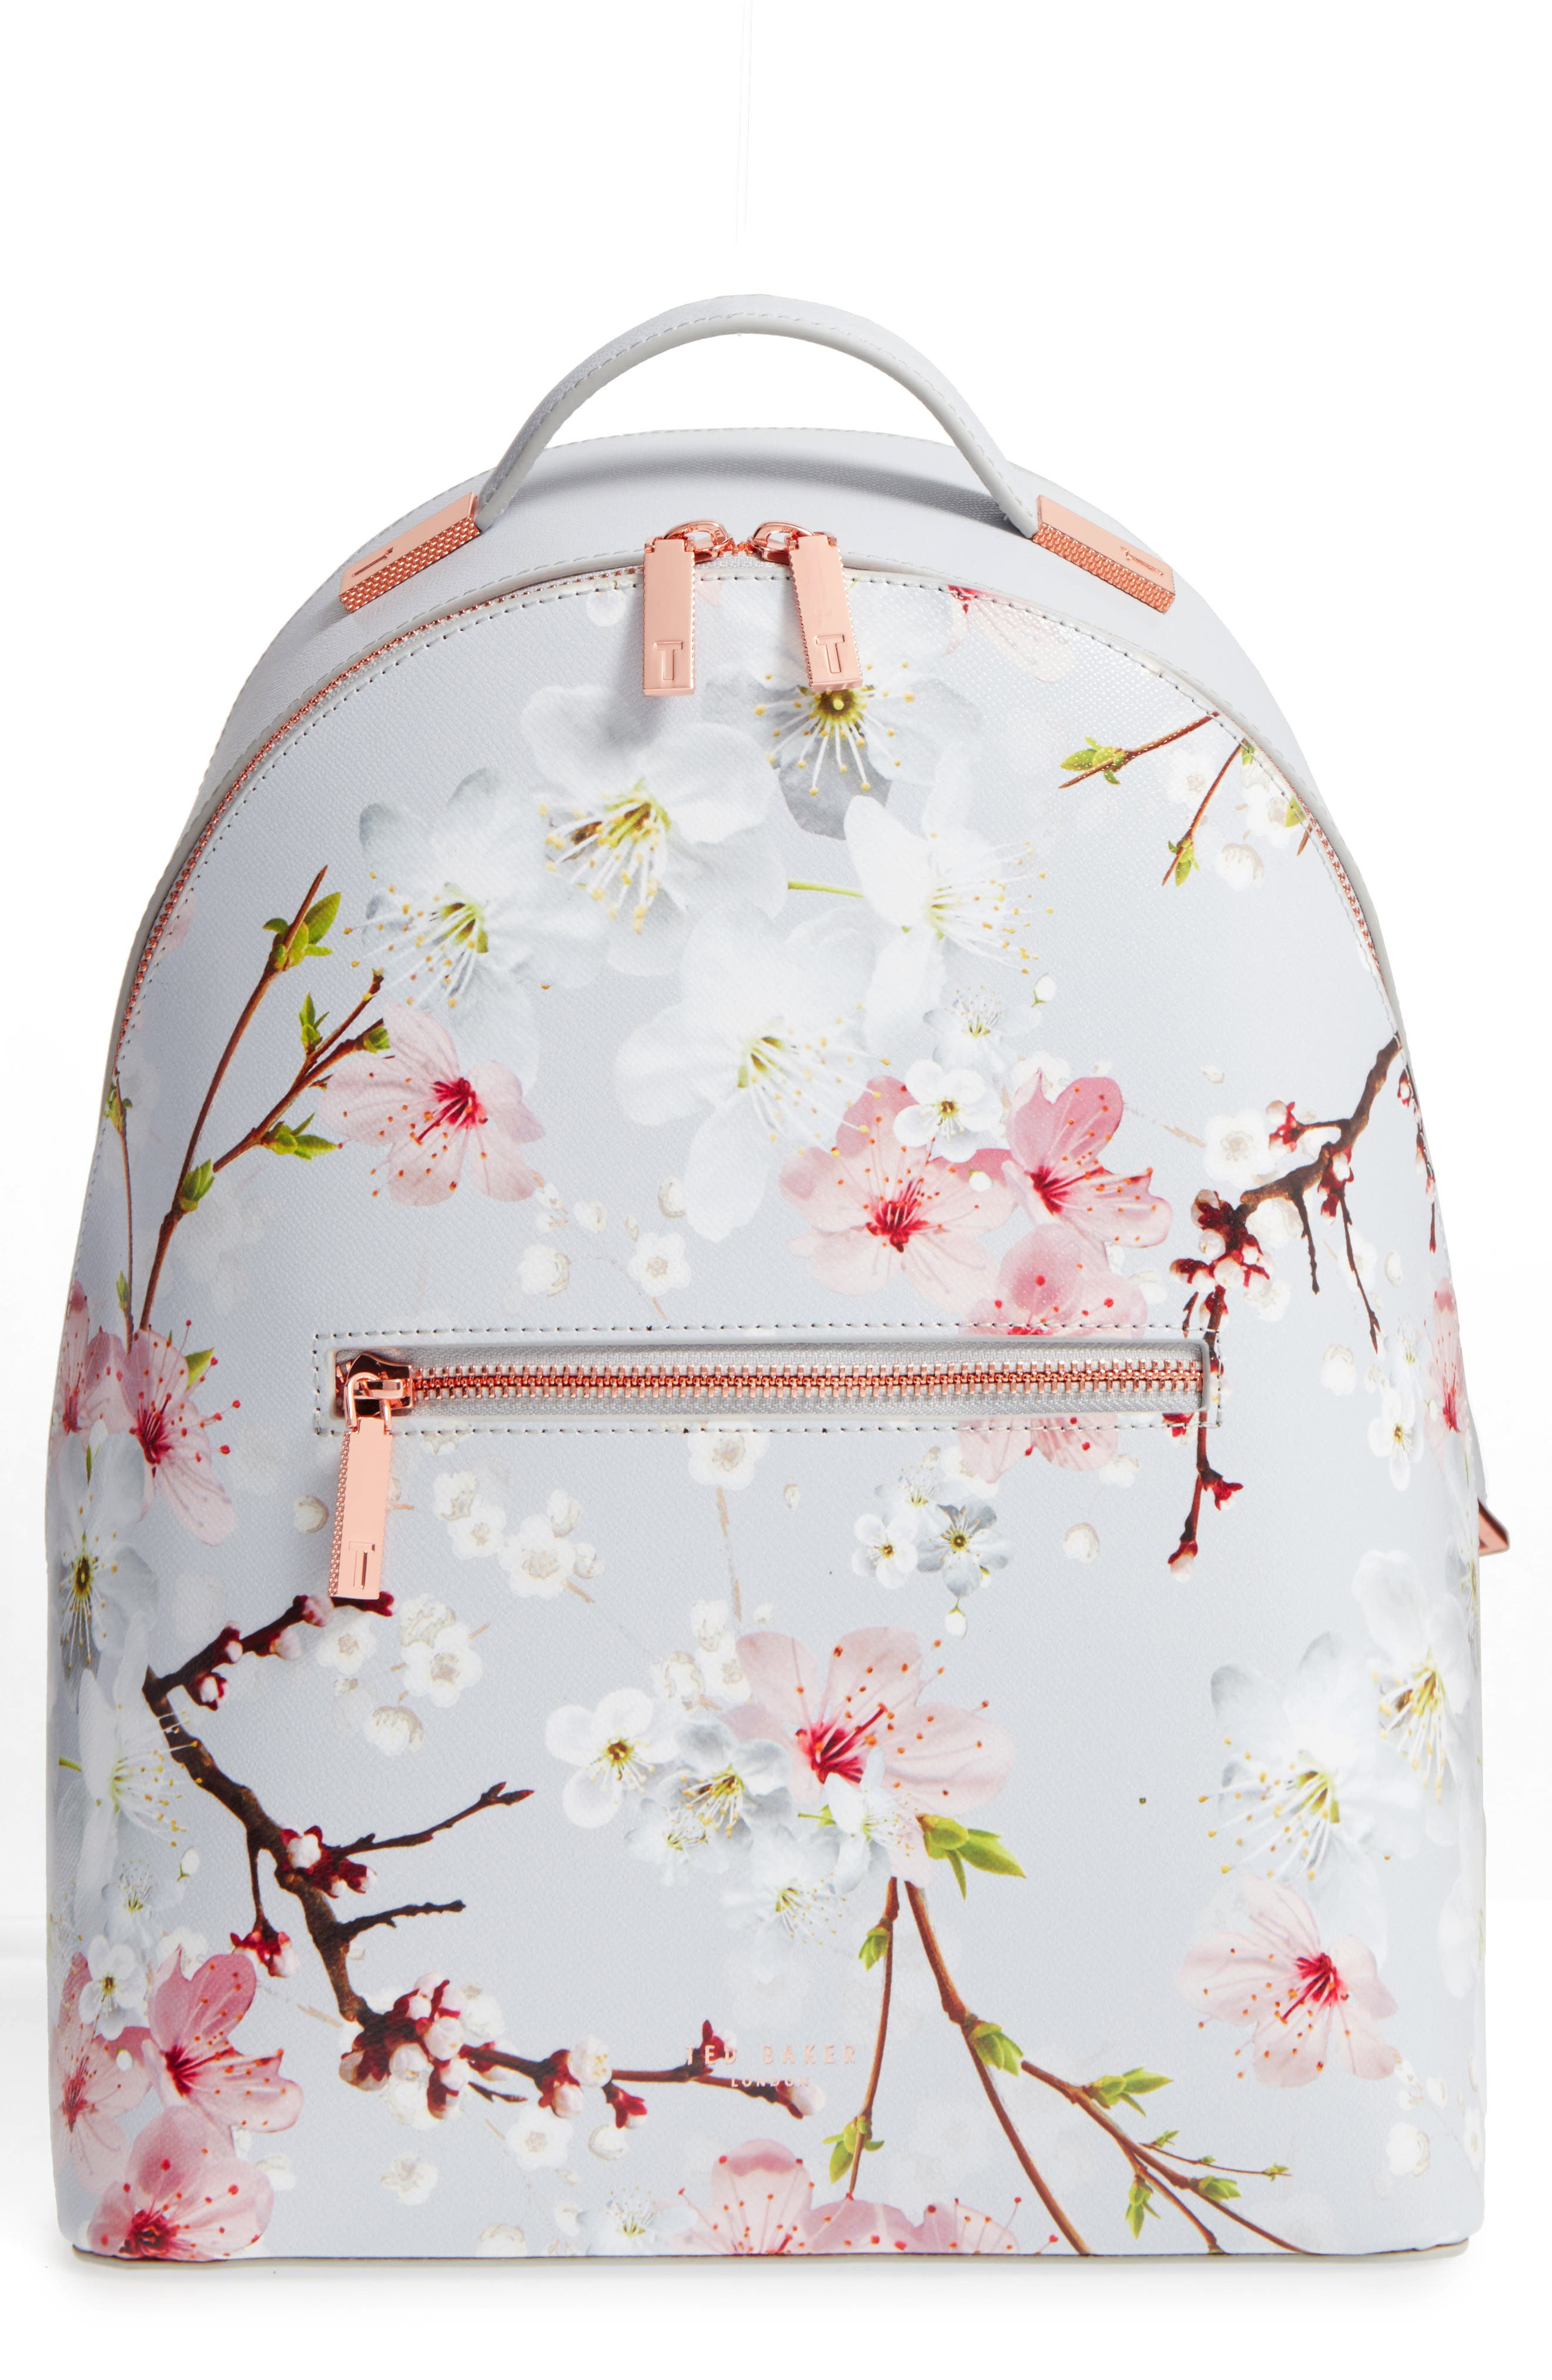 Flower Print Leather Backpack,                             Main thumbnail 1, color,                             020